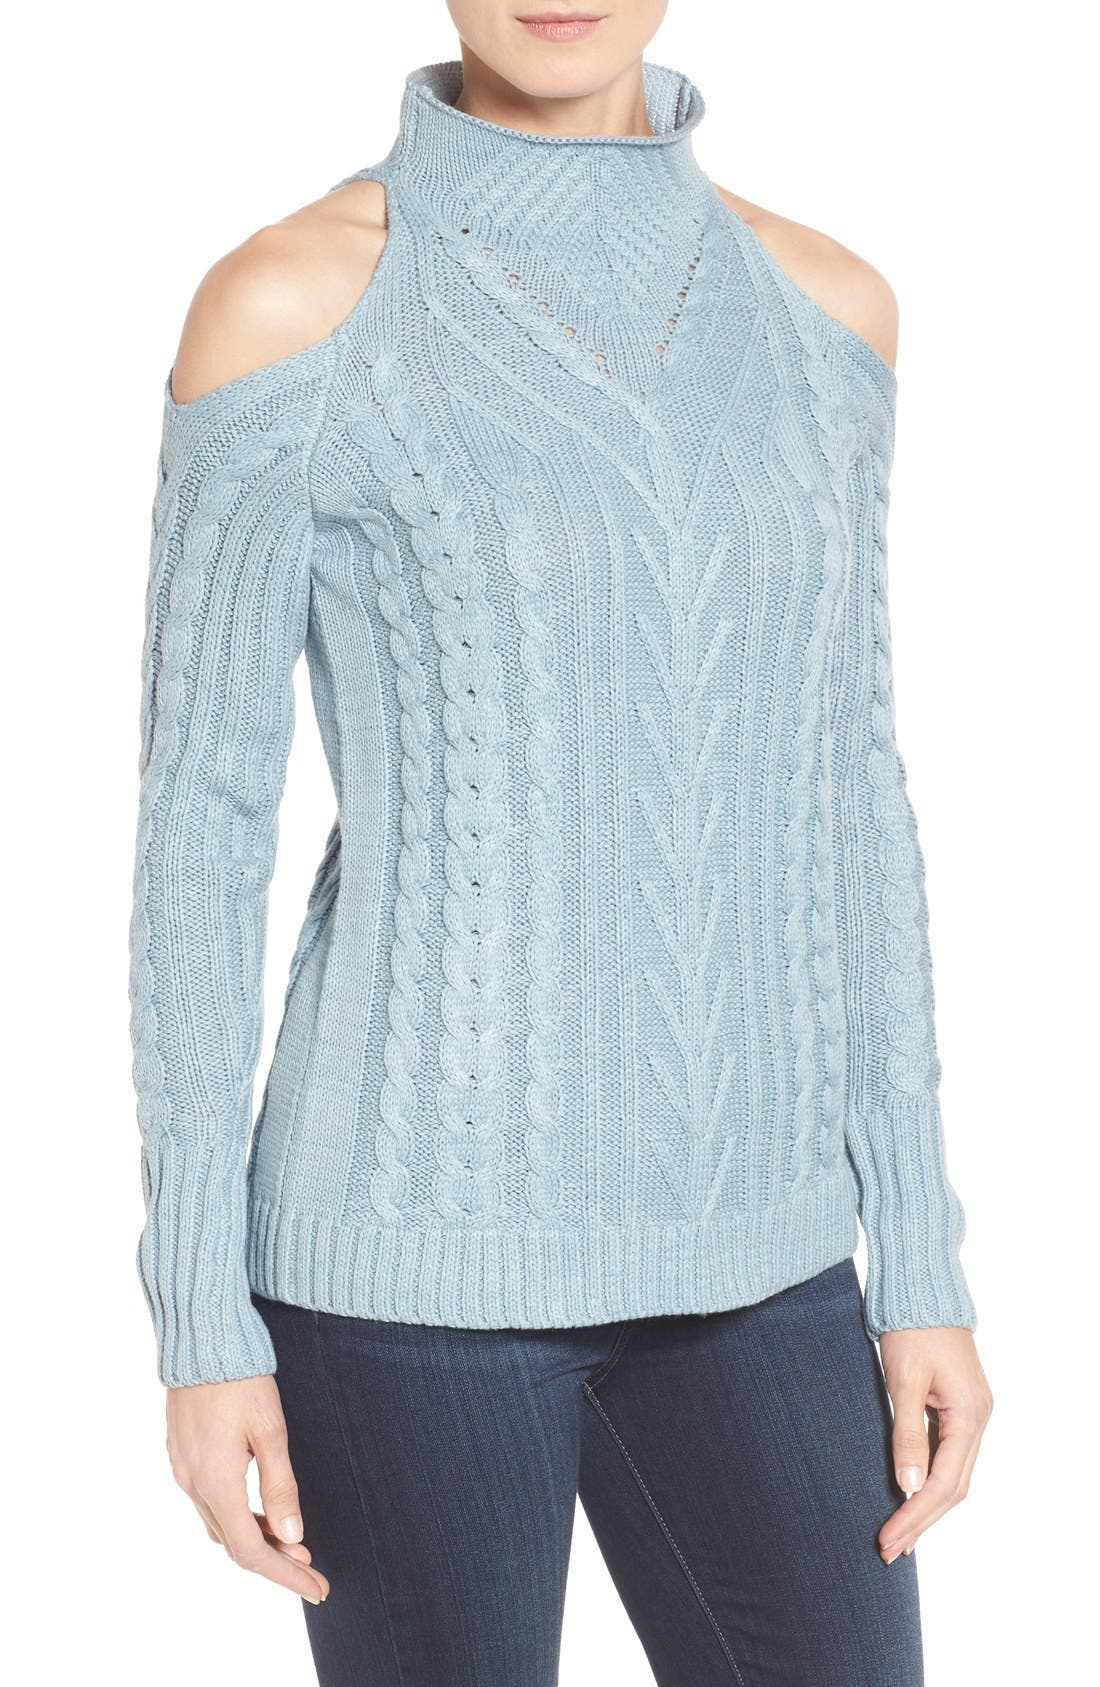 Main Image - RD Style Cold Shoulder Cable Knit Sweater